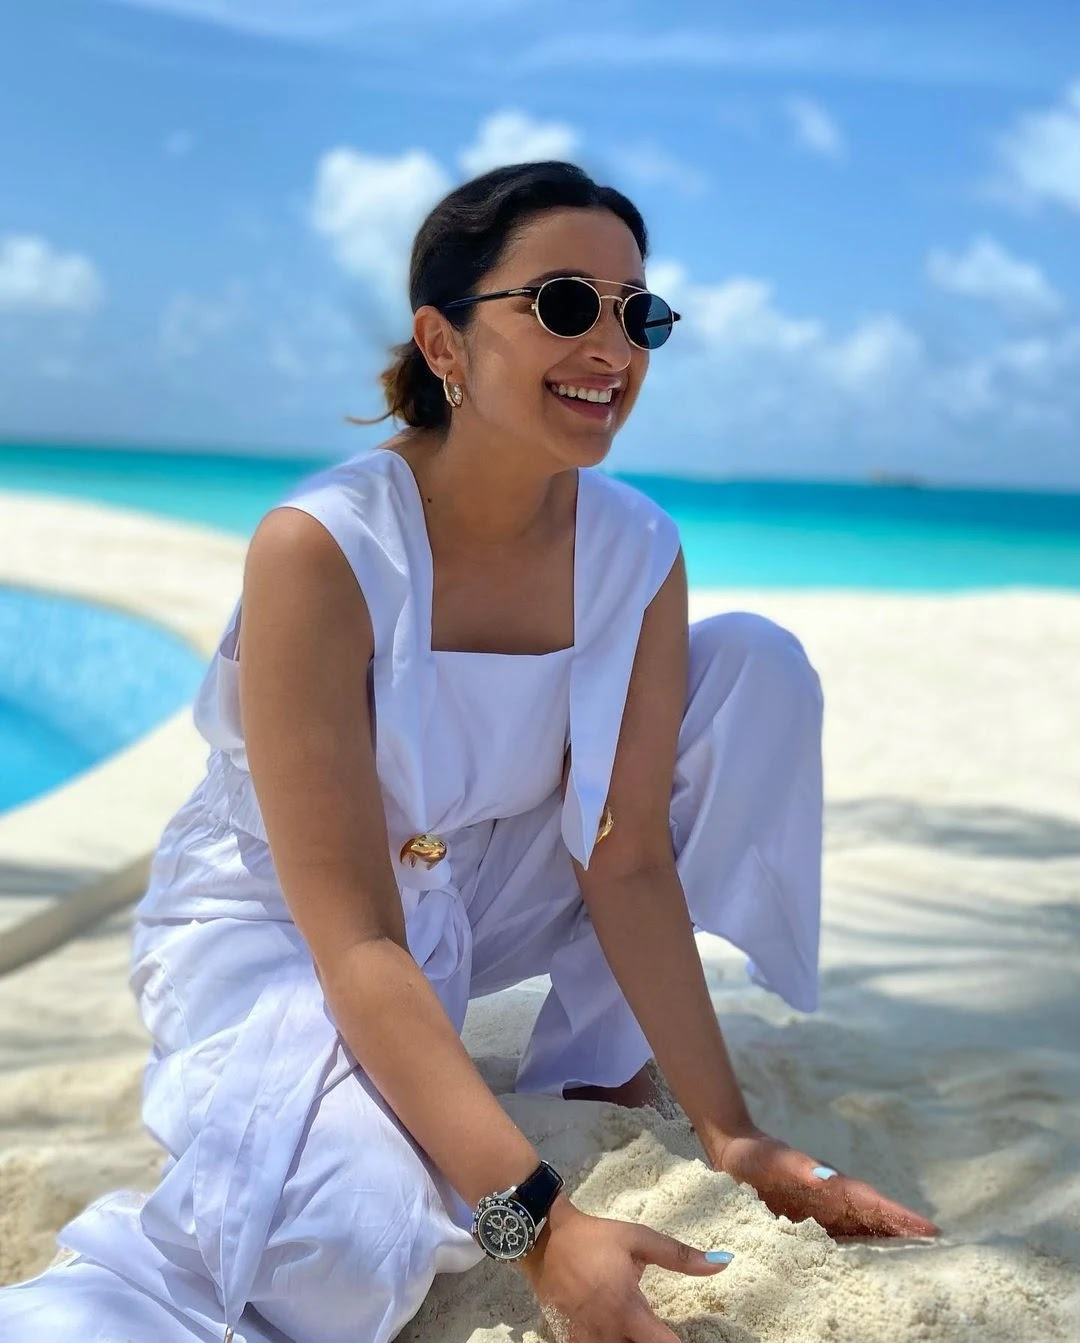 Parineeti Chopra in red swimsuit is too hot to handle - see vacation photos of this Bollywood actress.